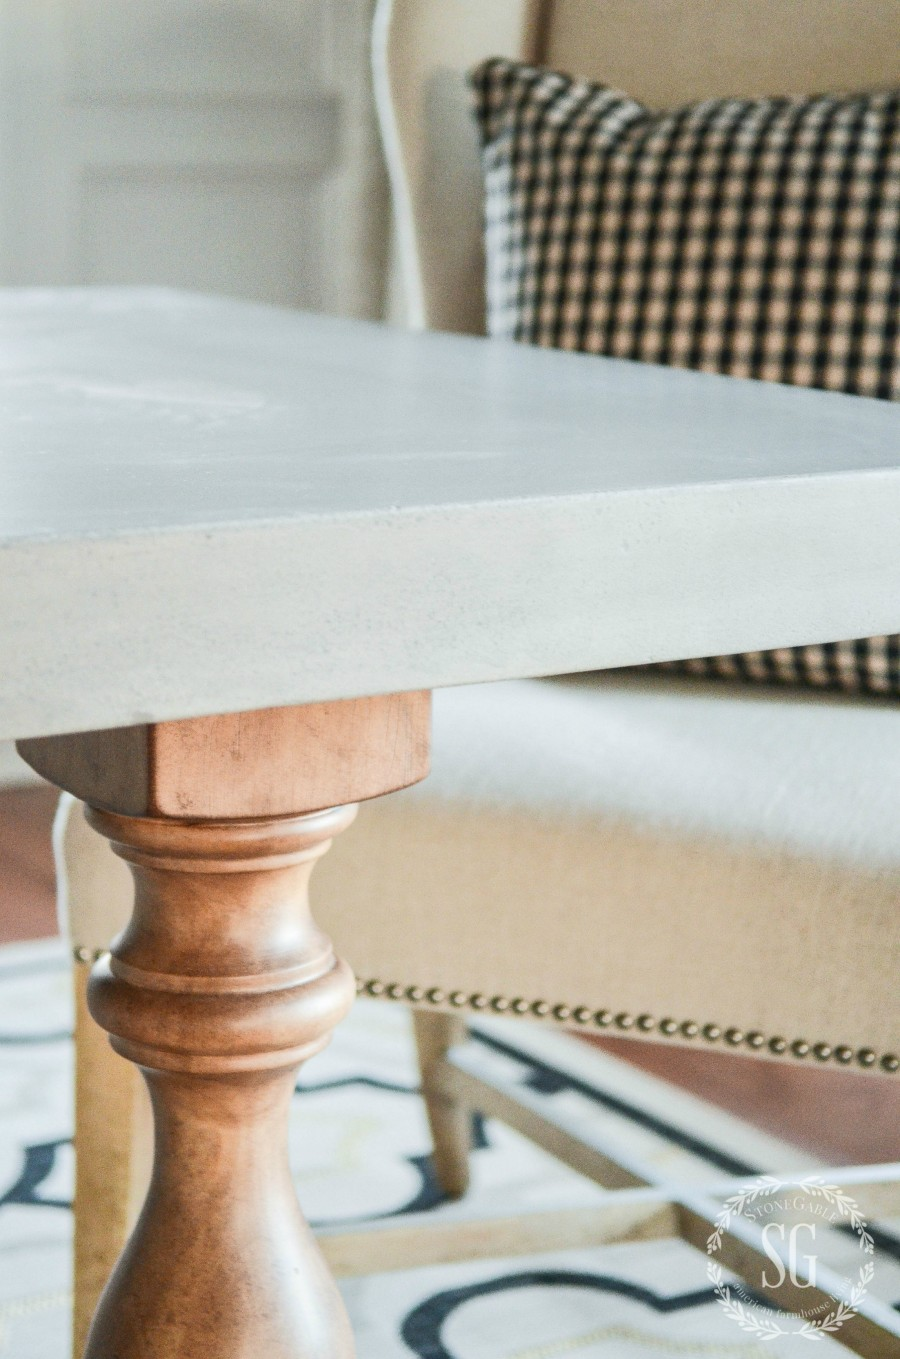 A NEW DINING ROOM TABLE- A new kind of table with a concrete top